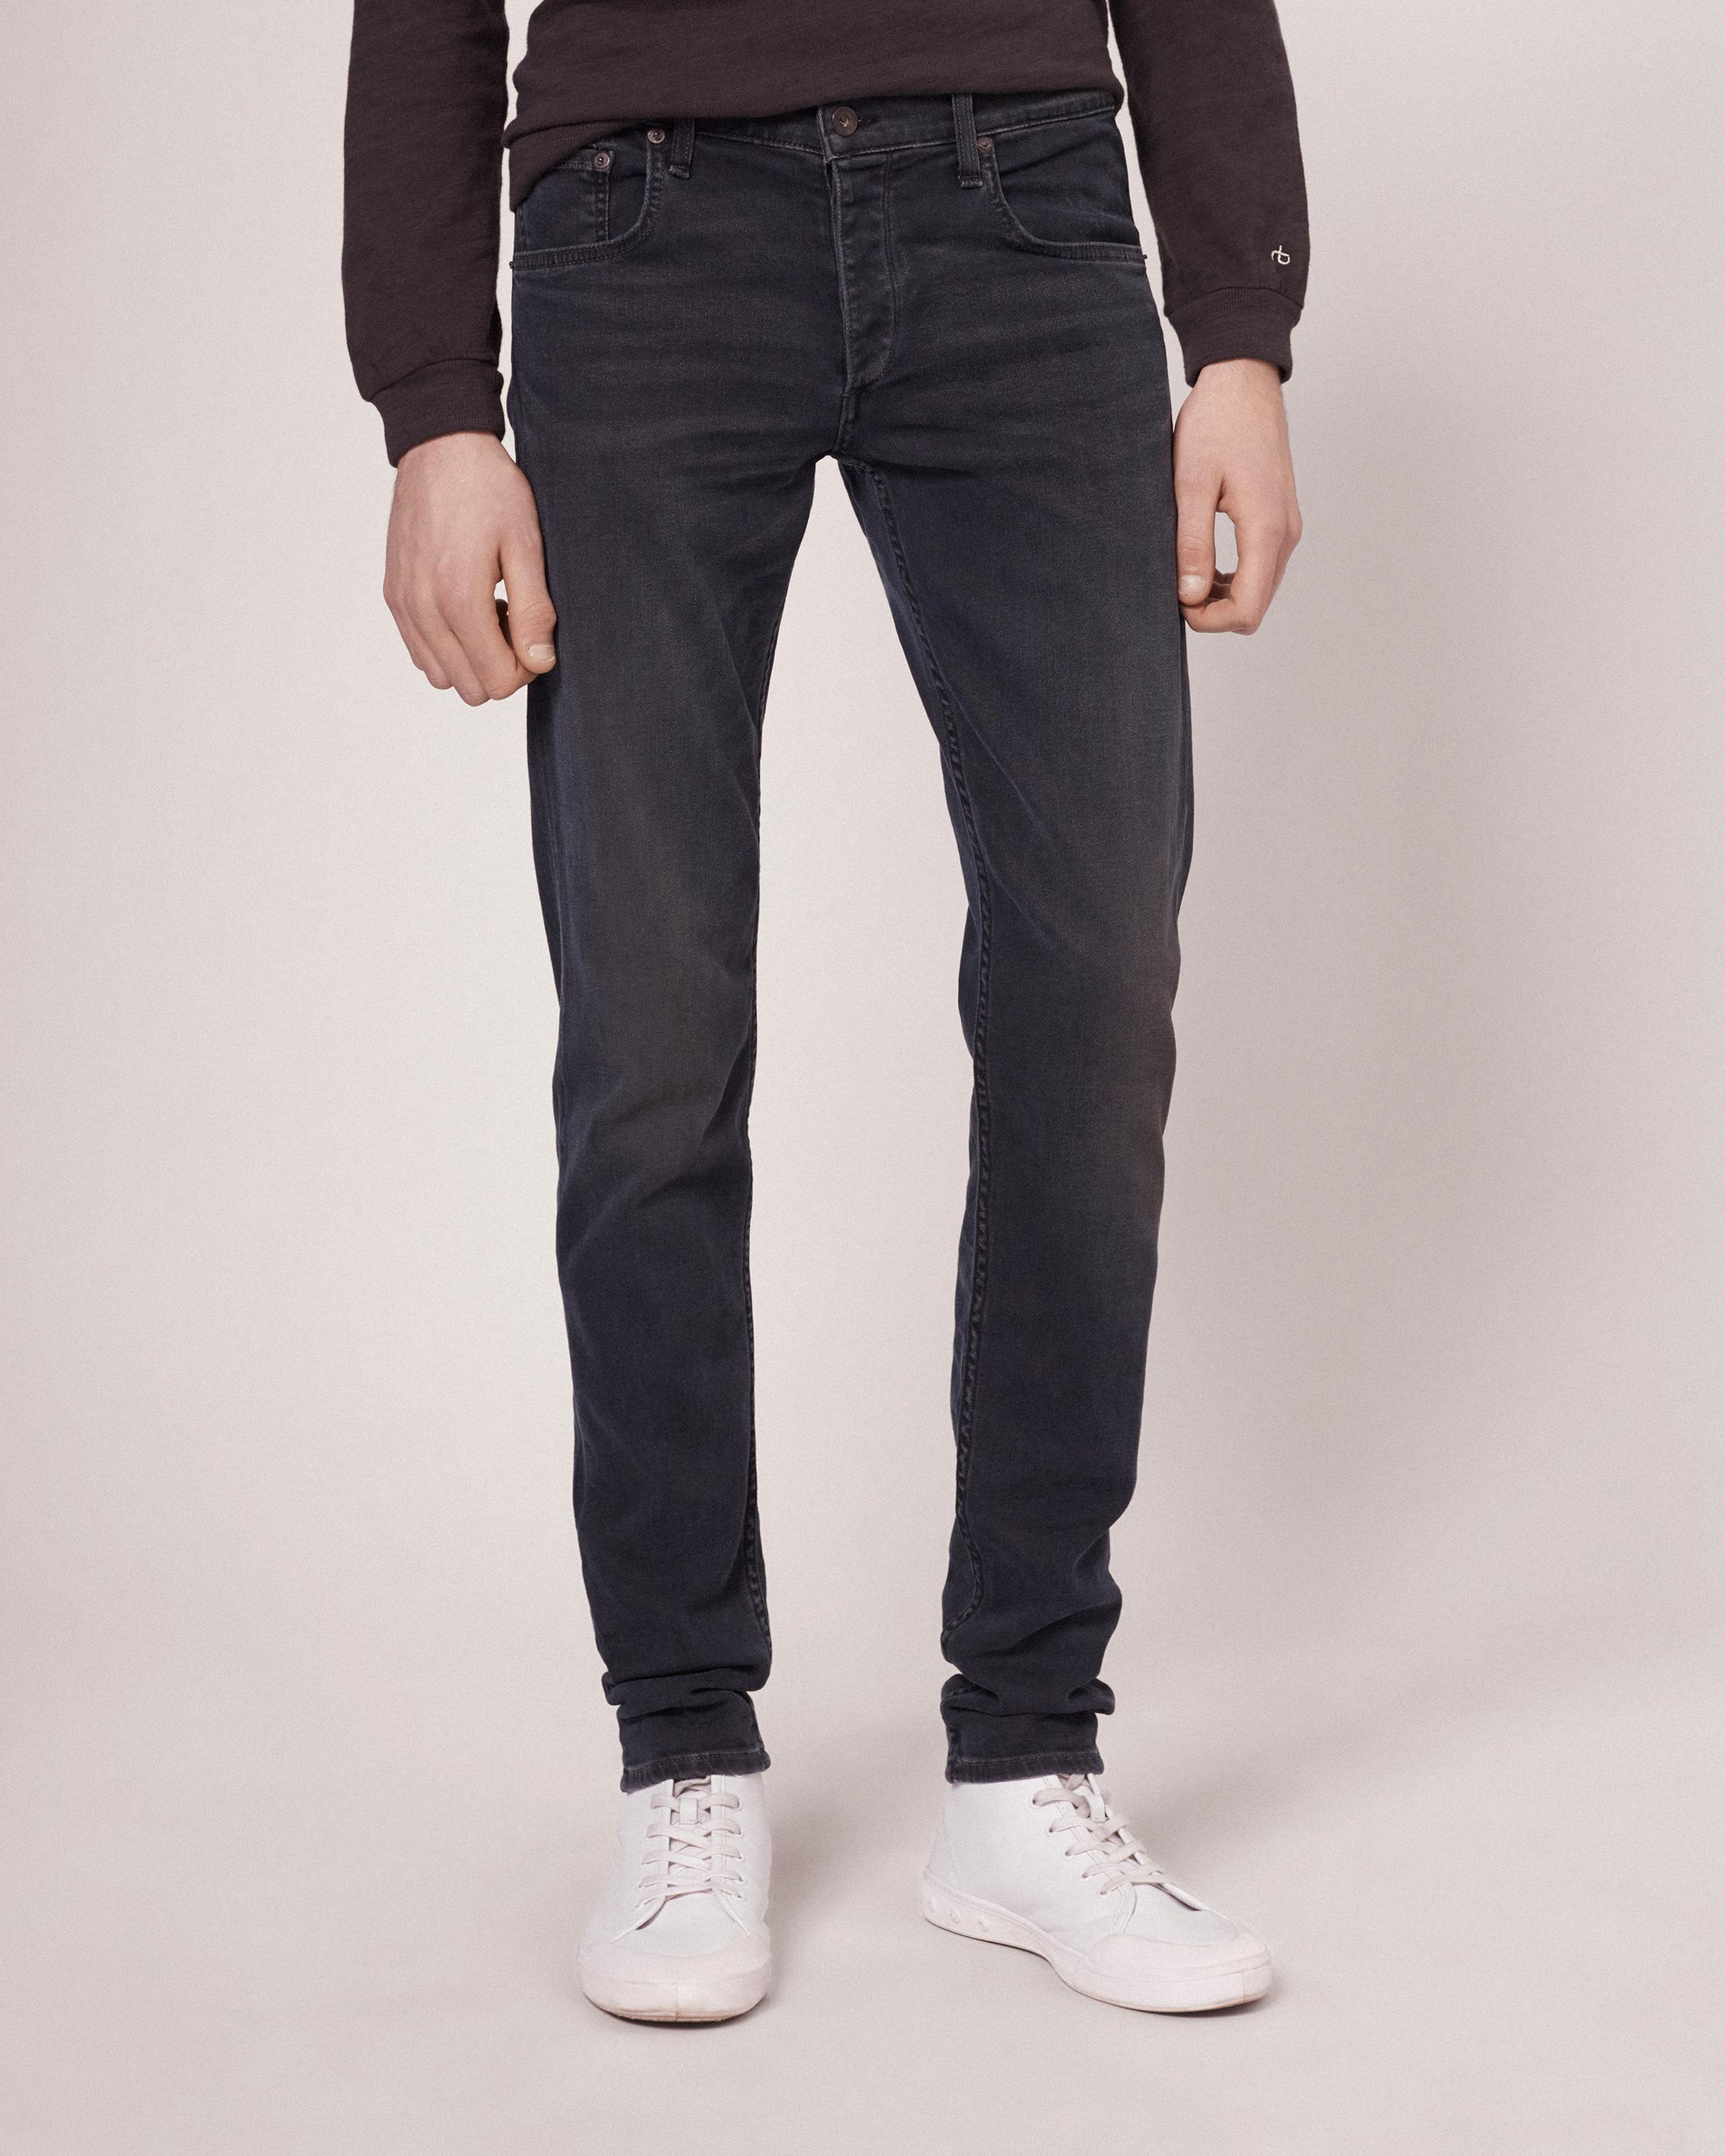 Best Replica Men's Designer Clothing Fit jean Richmond